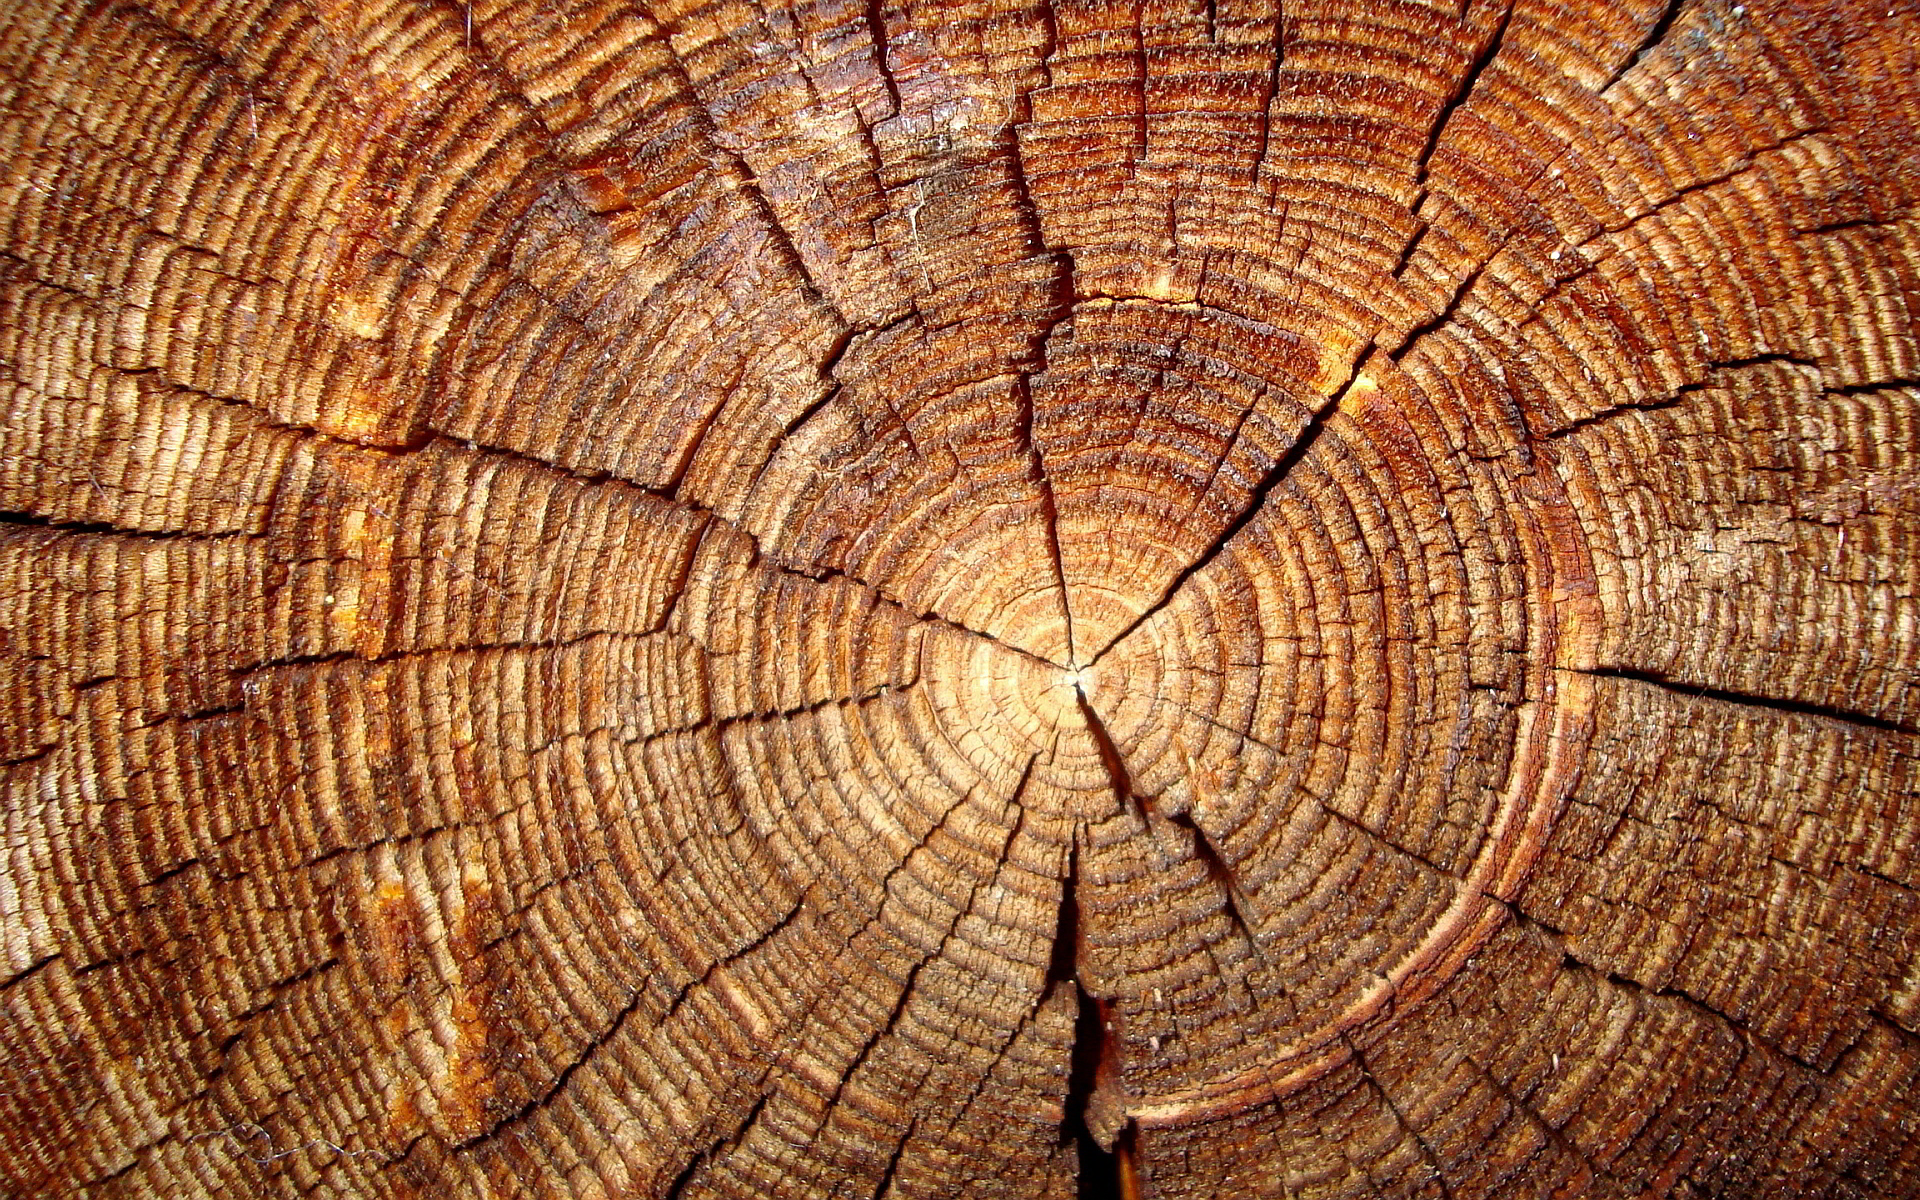 Tree annual rings